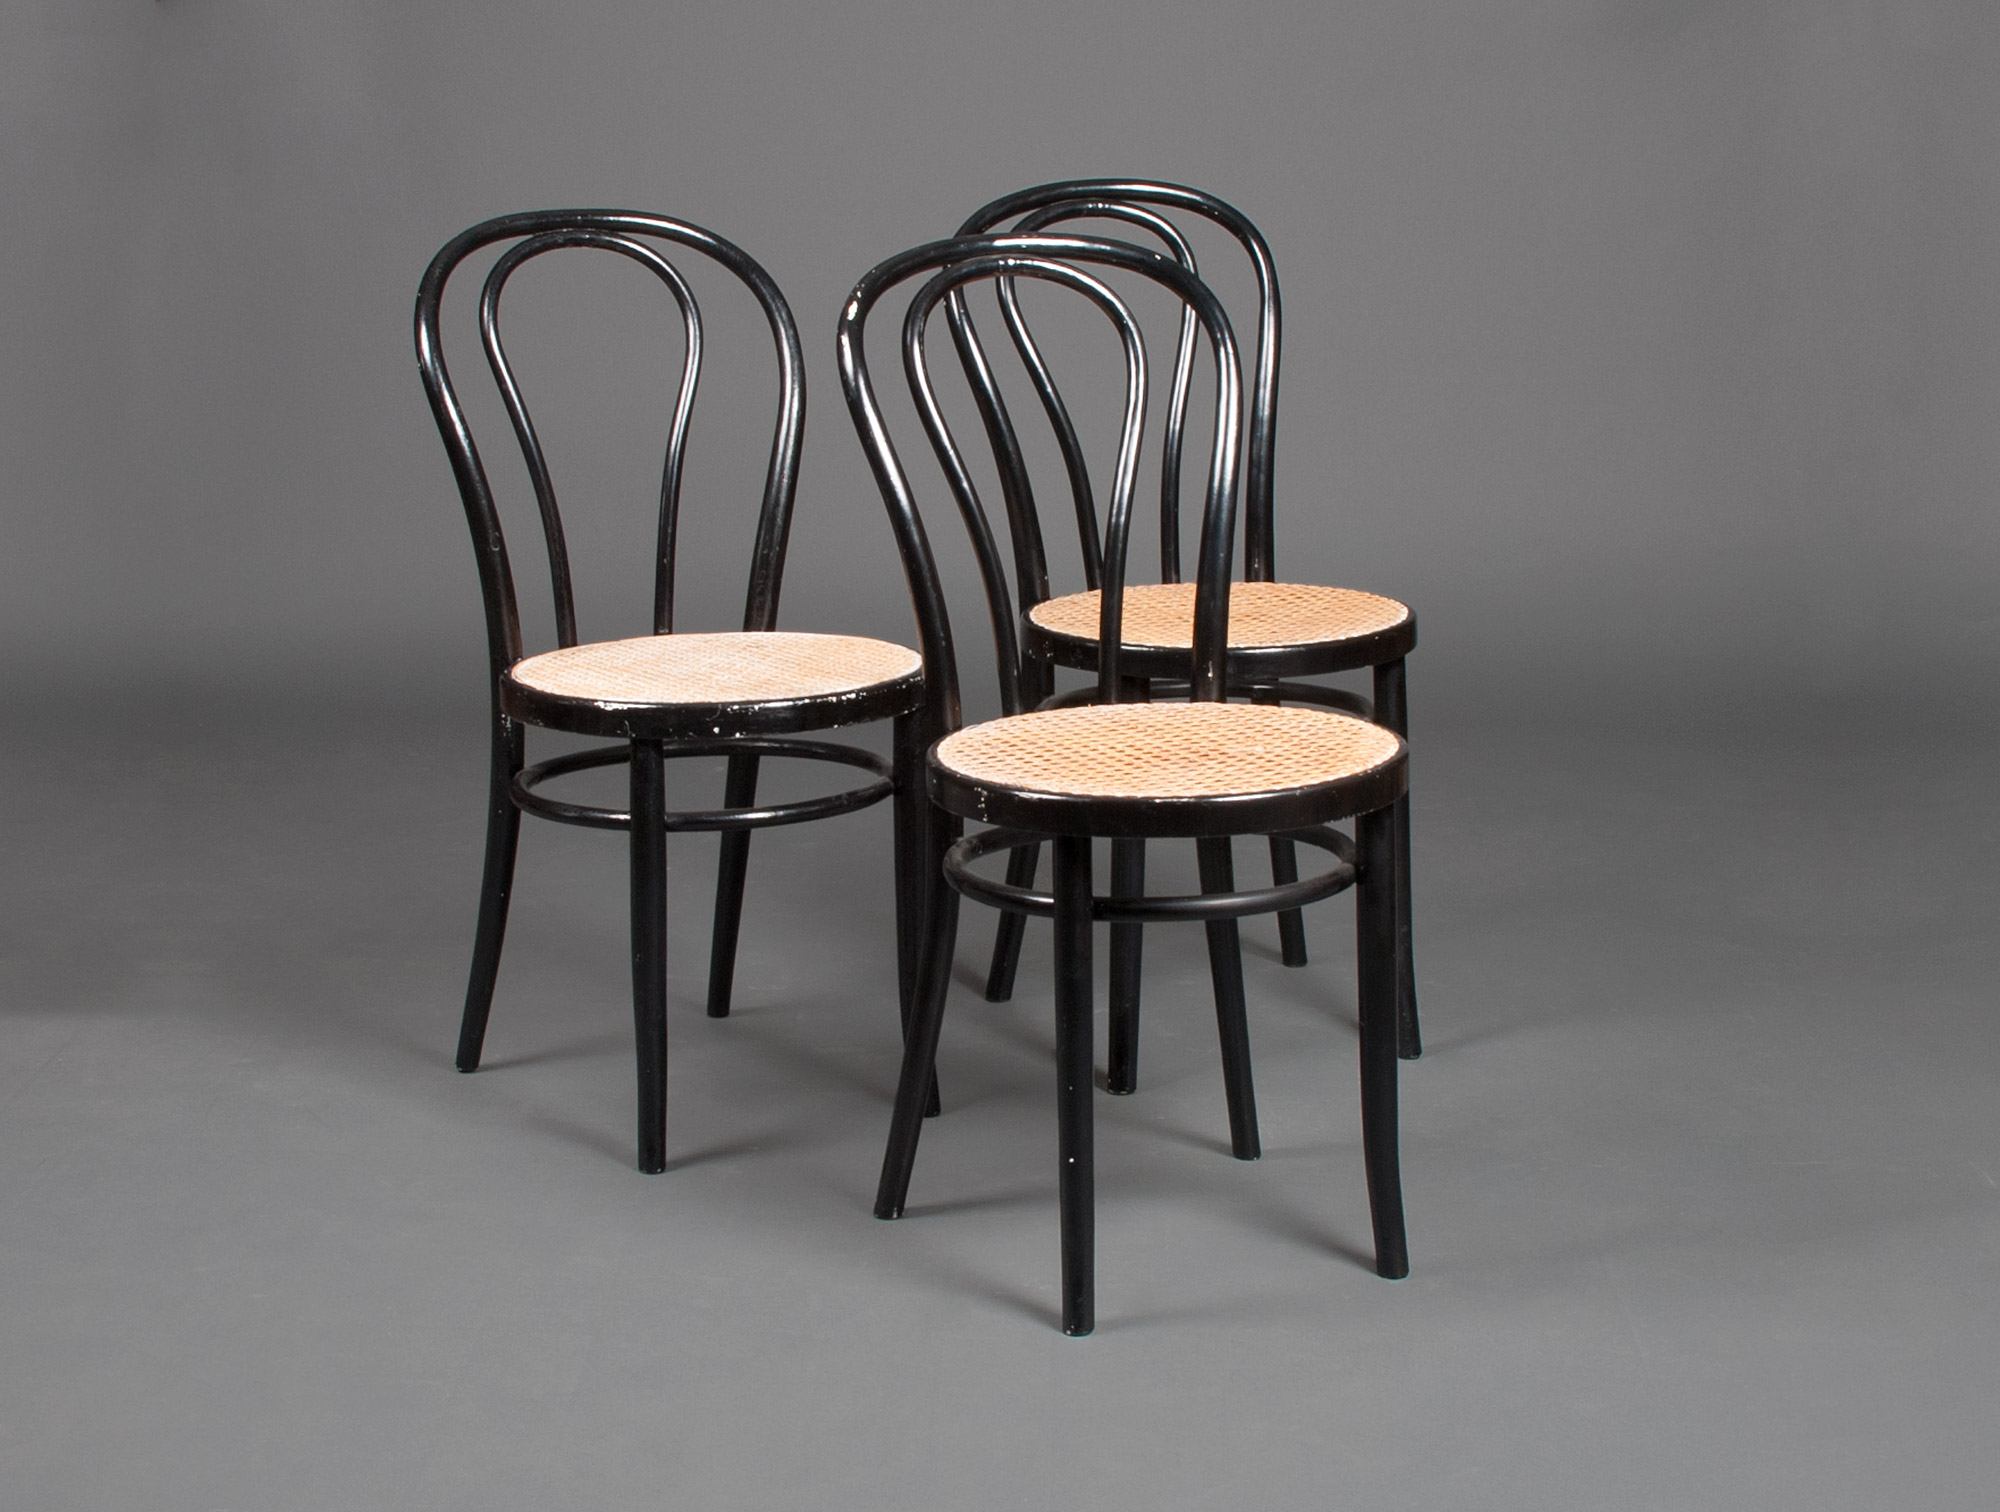 3 thonet style black chairs